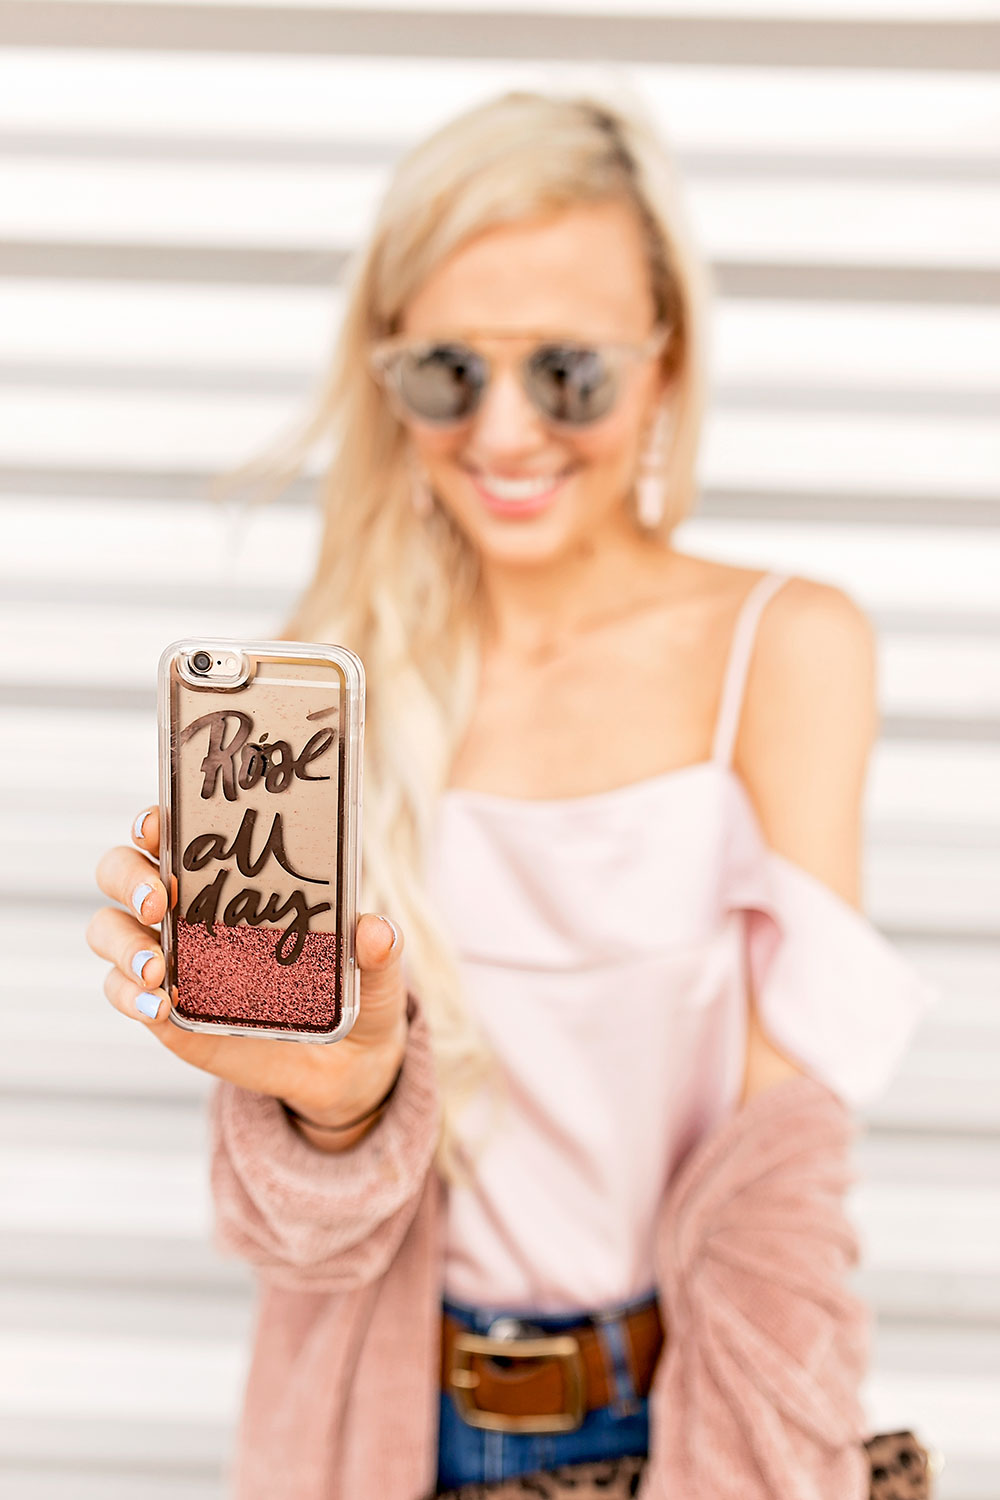 velvet-caviar-rose-all-day-glitter-phone-case